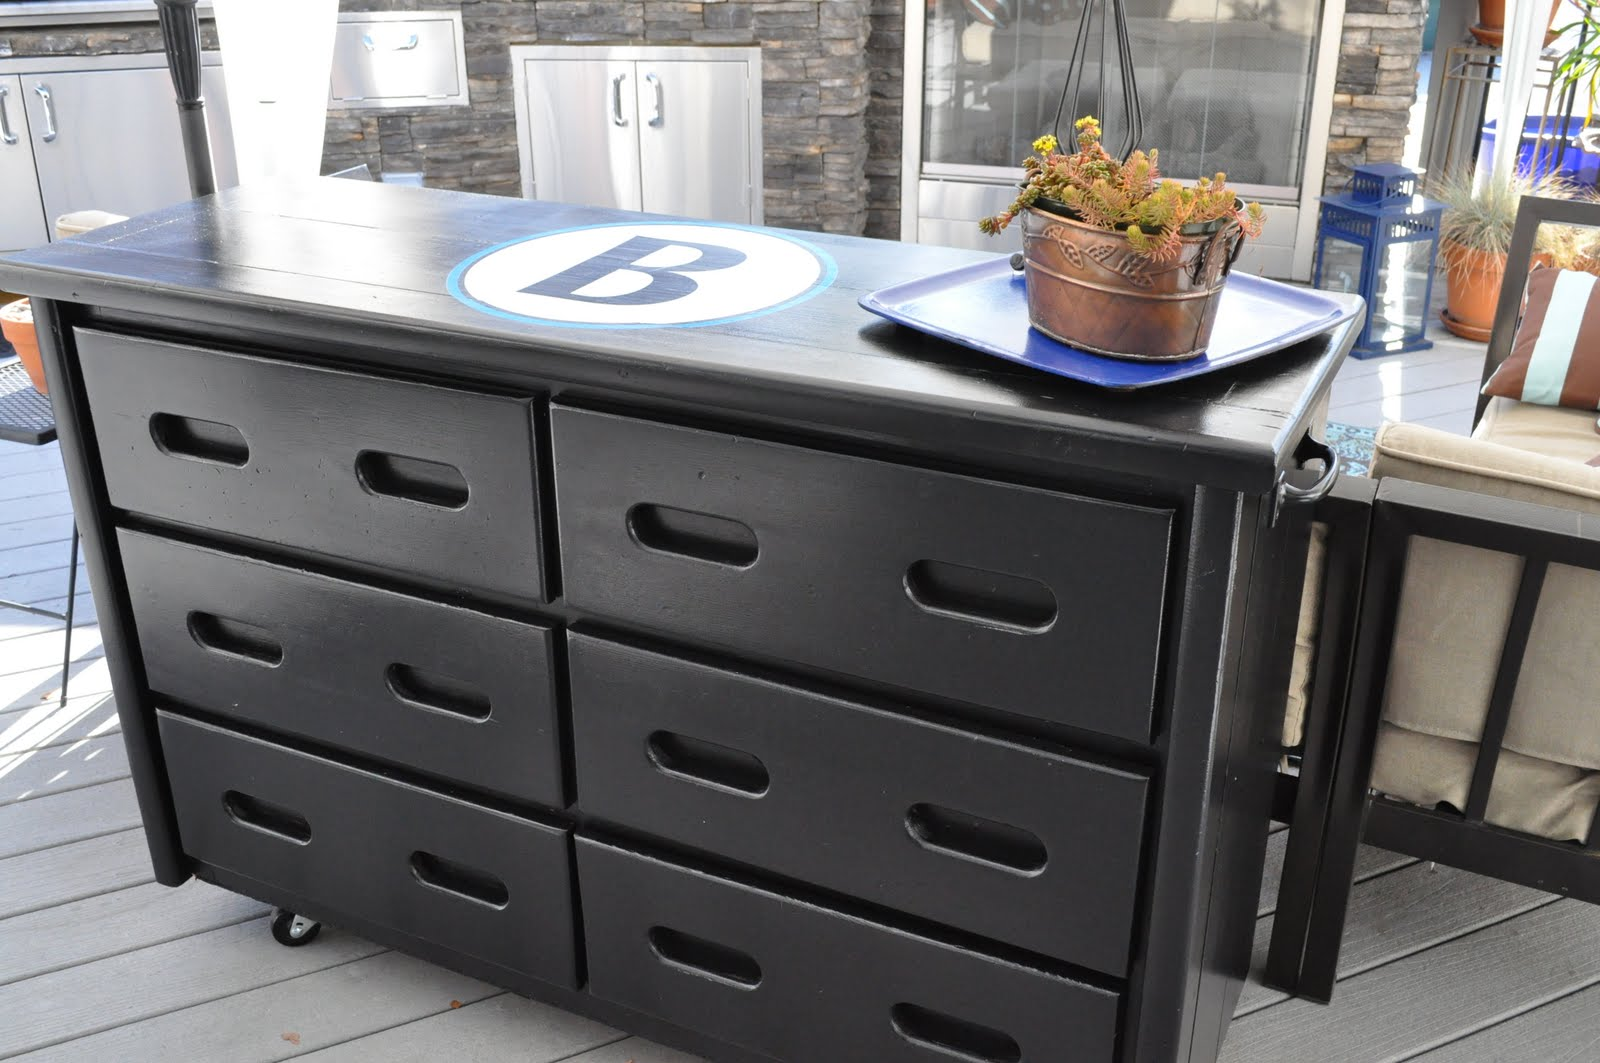 My new outdoor buffet table | Organizing Made Fun: My new outdoor ...